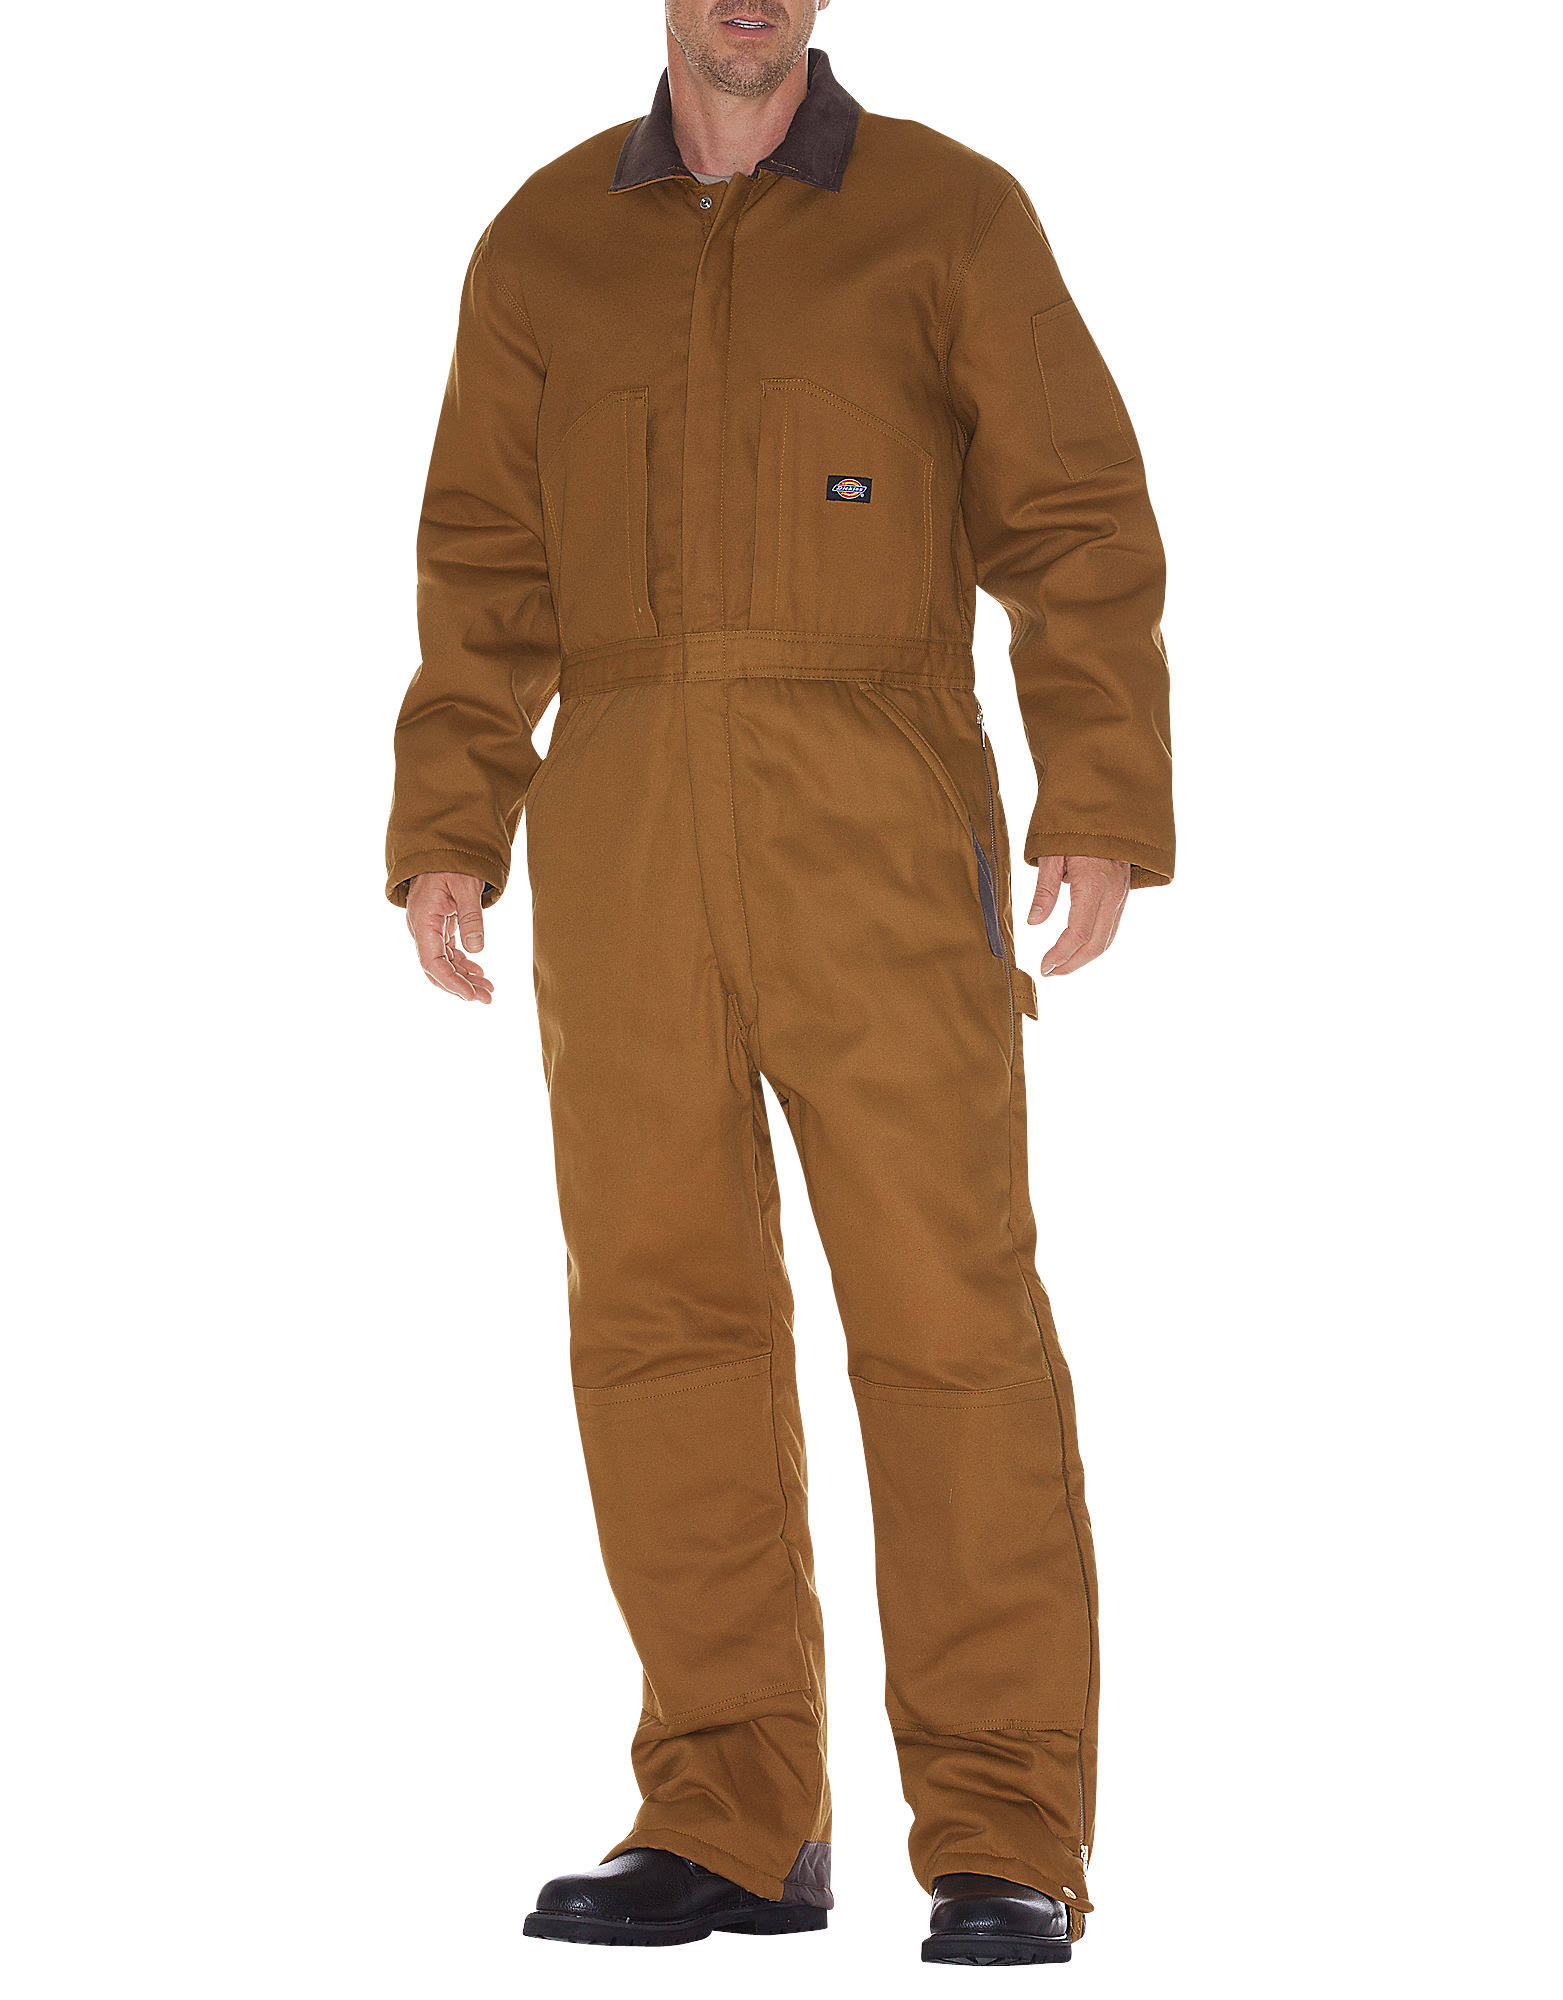 Dickies Men's Premium Insulated Duck Coverall - Brown, X-Large